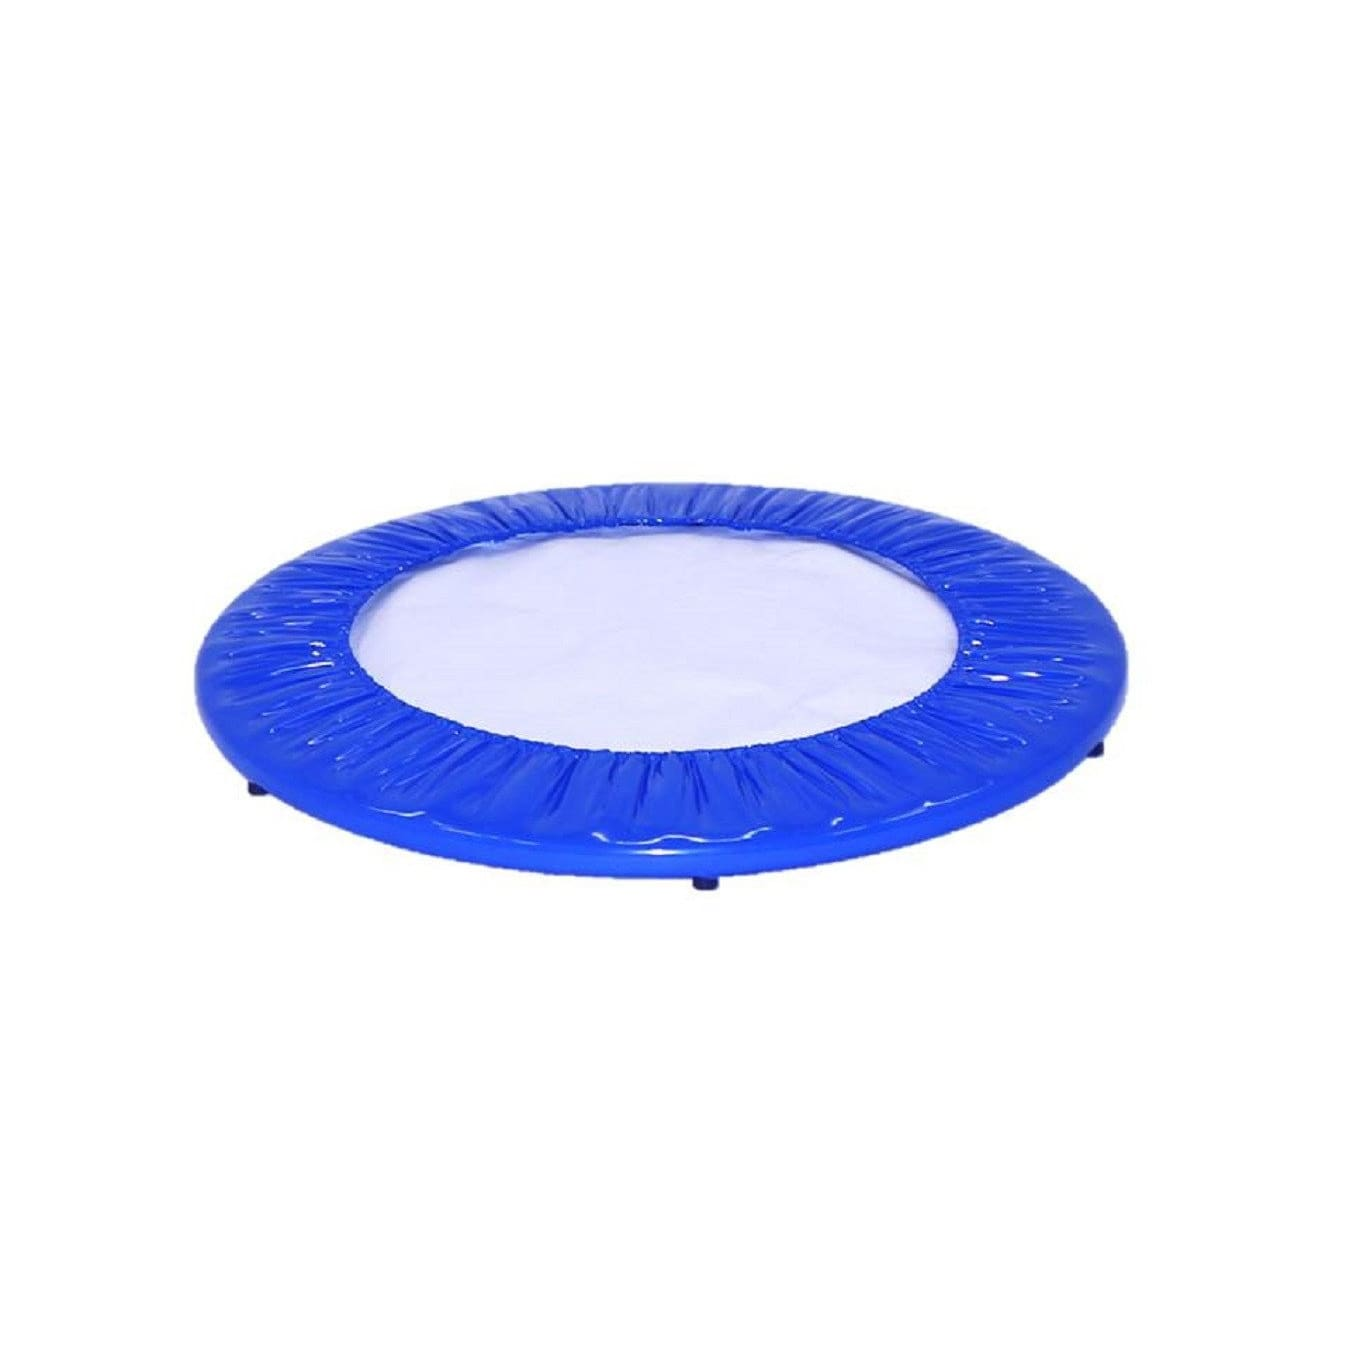 Upper Bounce 38 Mini Round Trampoline Replacement Safety Pad Red Spring Cover for 6 Legs